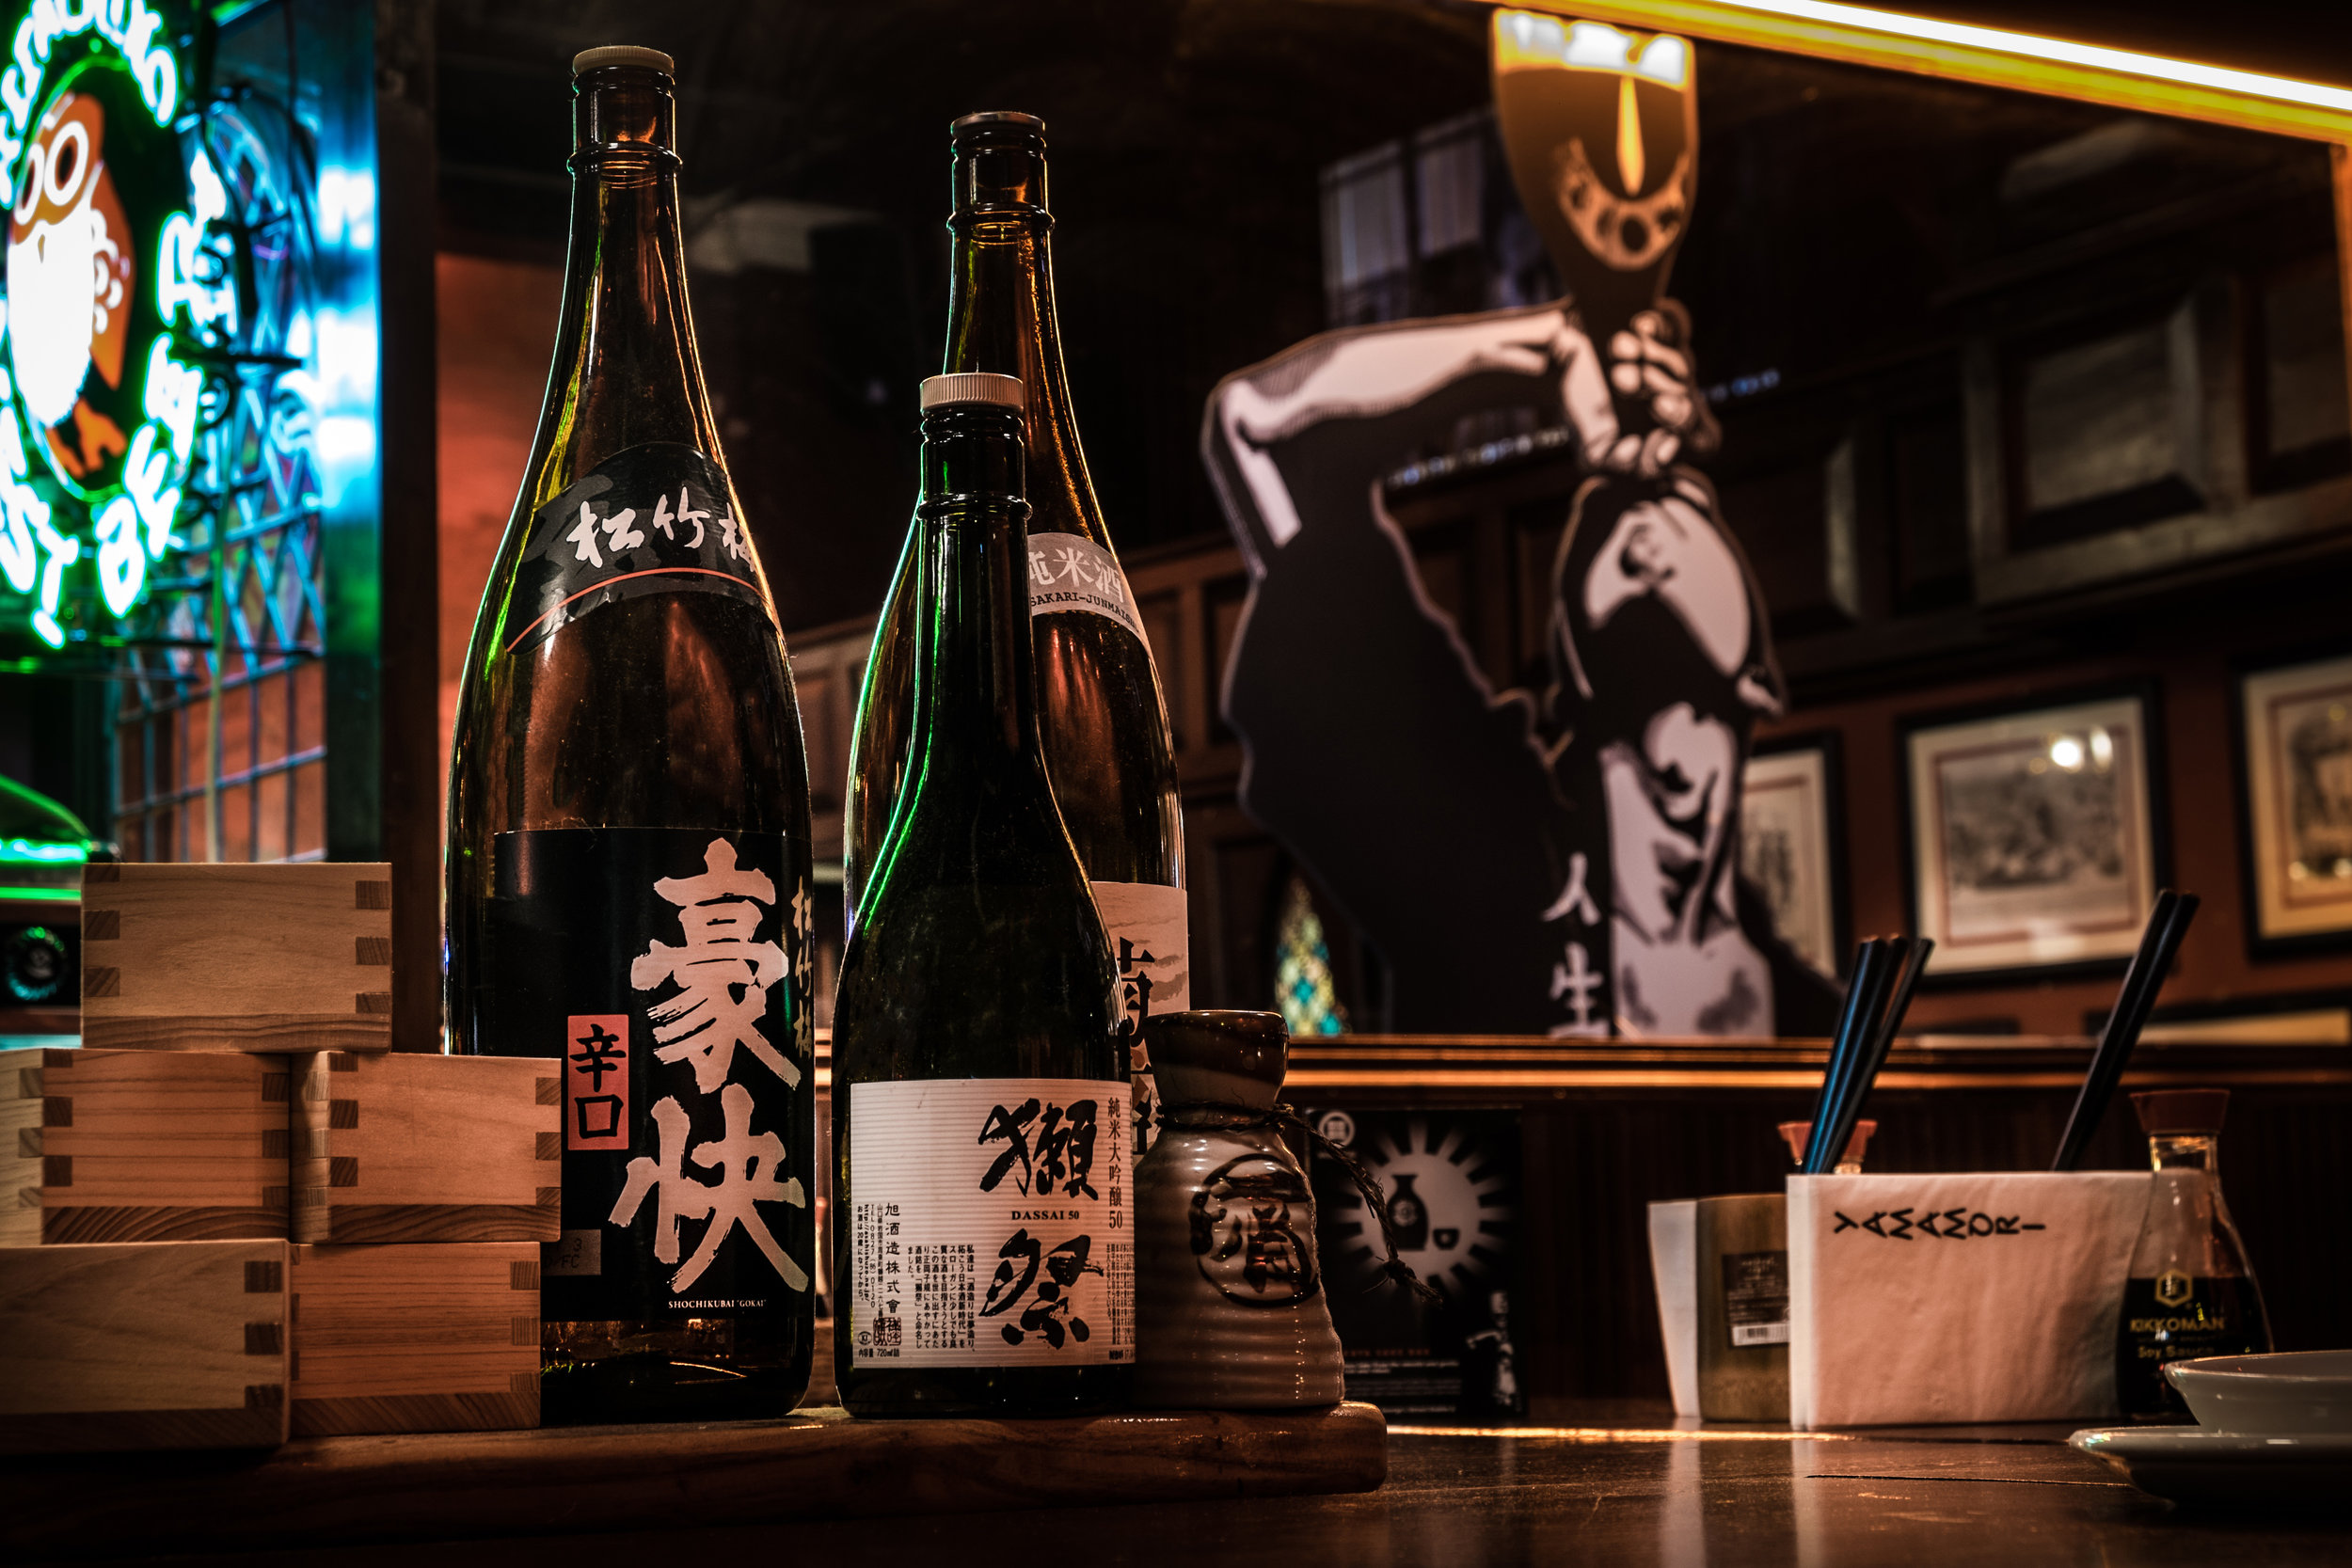 art Installations + Table tents - We commissioned an artist to install this graphic on the mirror and designed table tents with information about sake and how it's produced